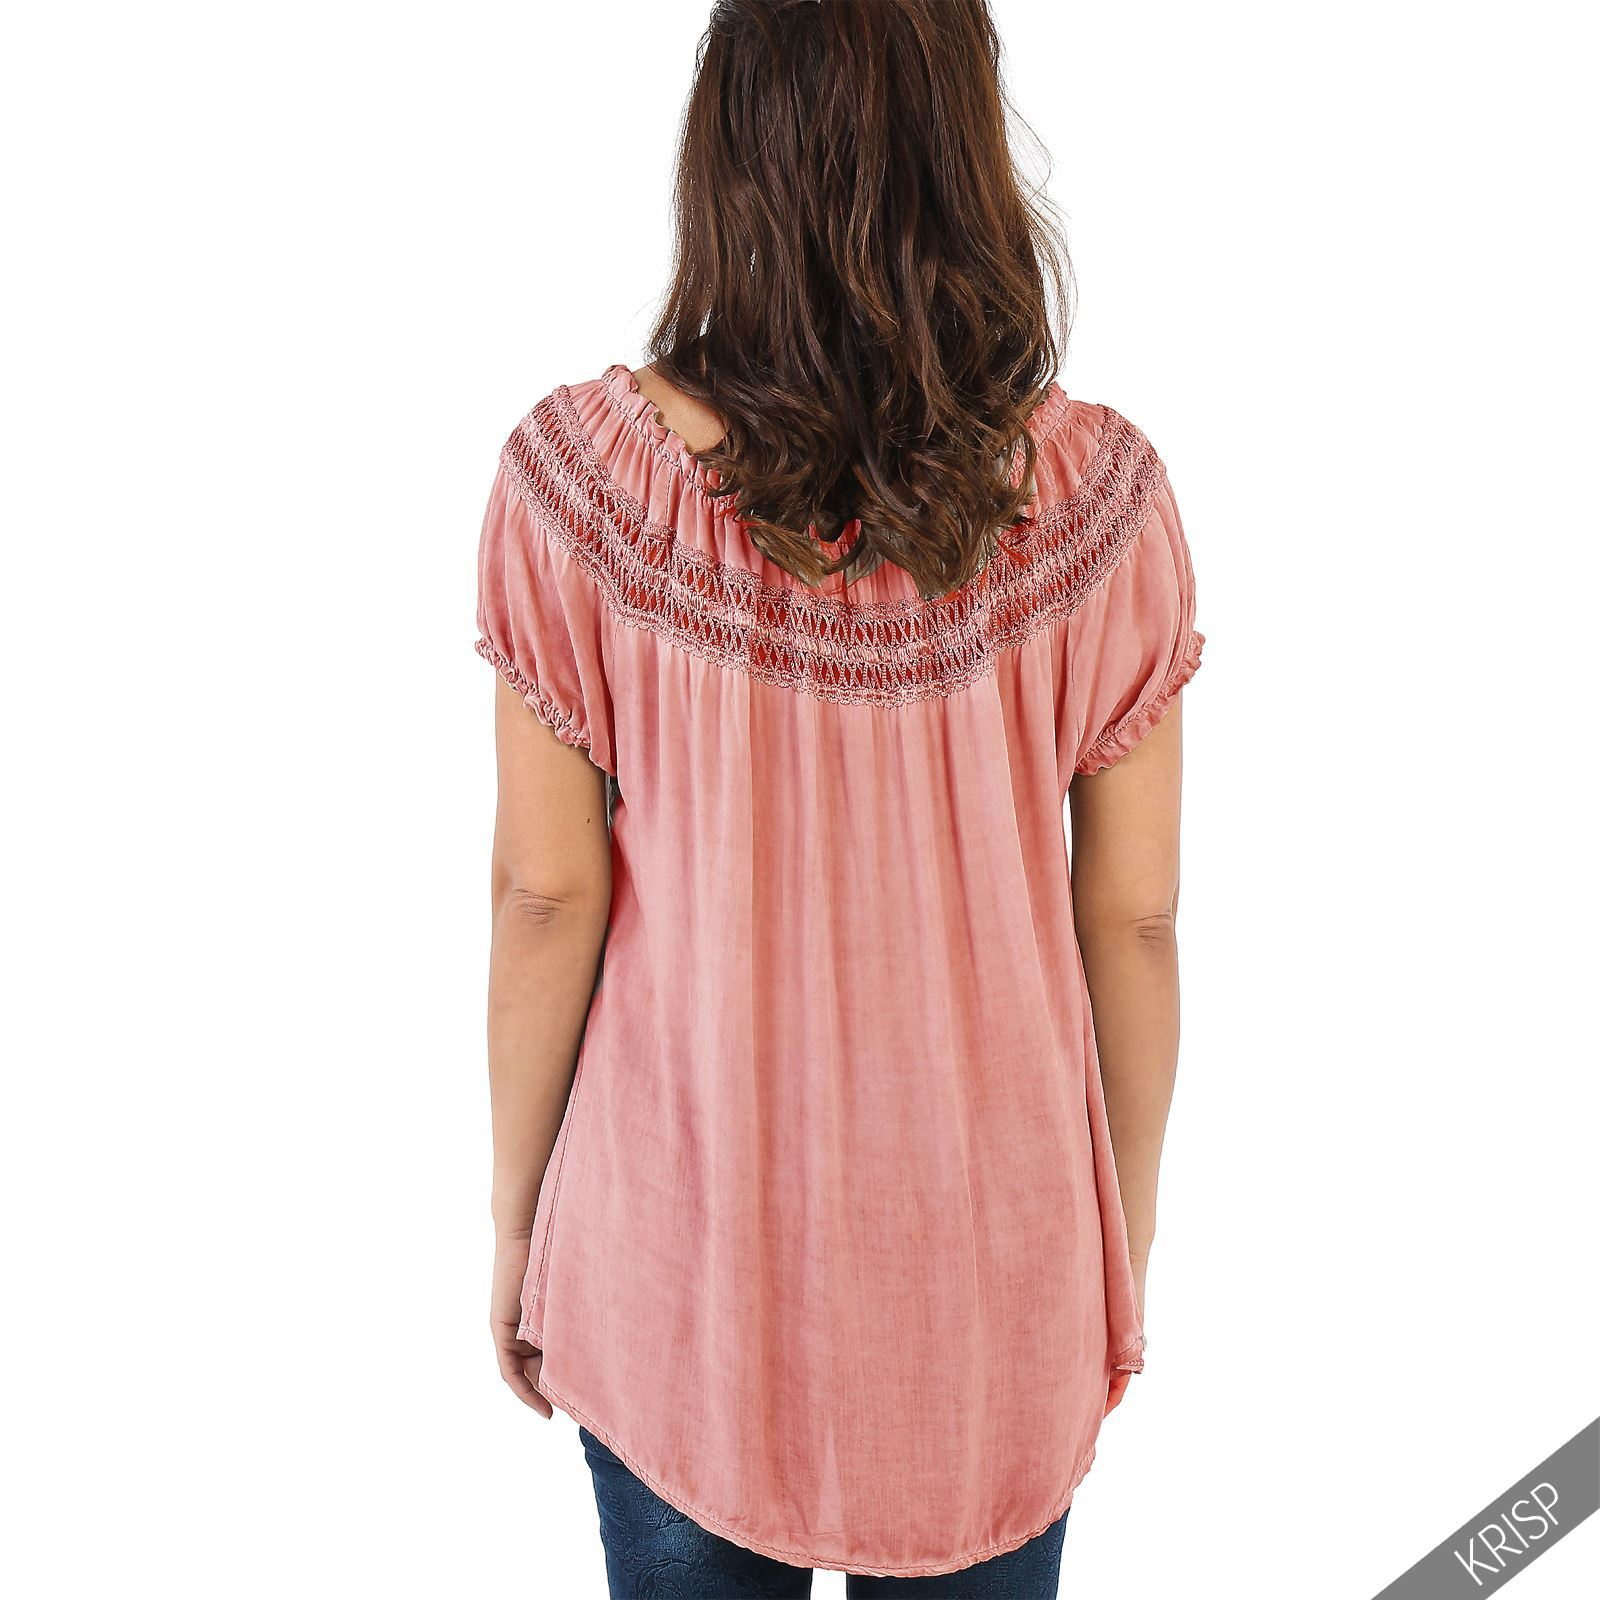 Womens-Off-Shoulder-Blouse-Gypsy-Boho-Cotton-T-Shirt-Top-Tunic-Summer-Loose-Fit thumbnail 5